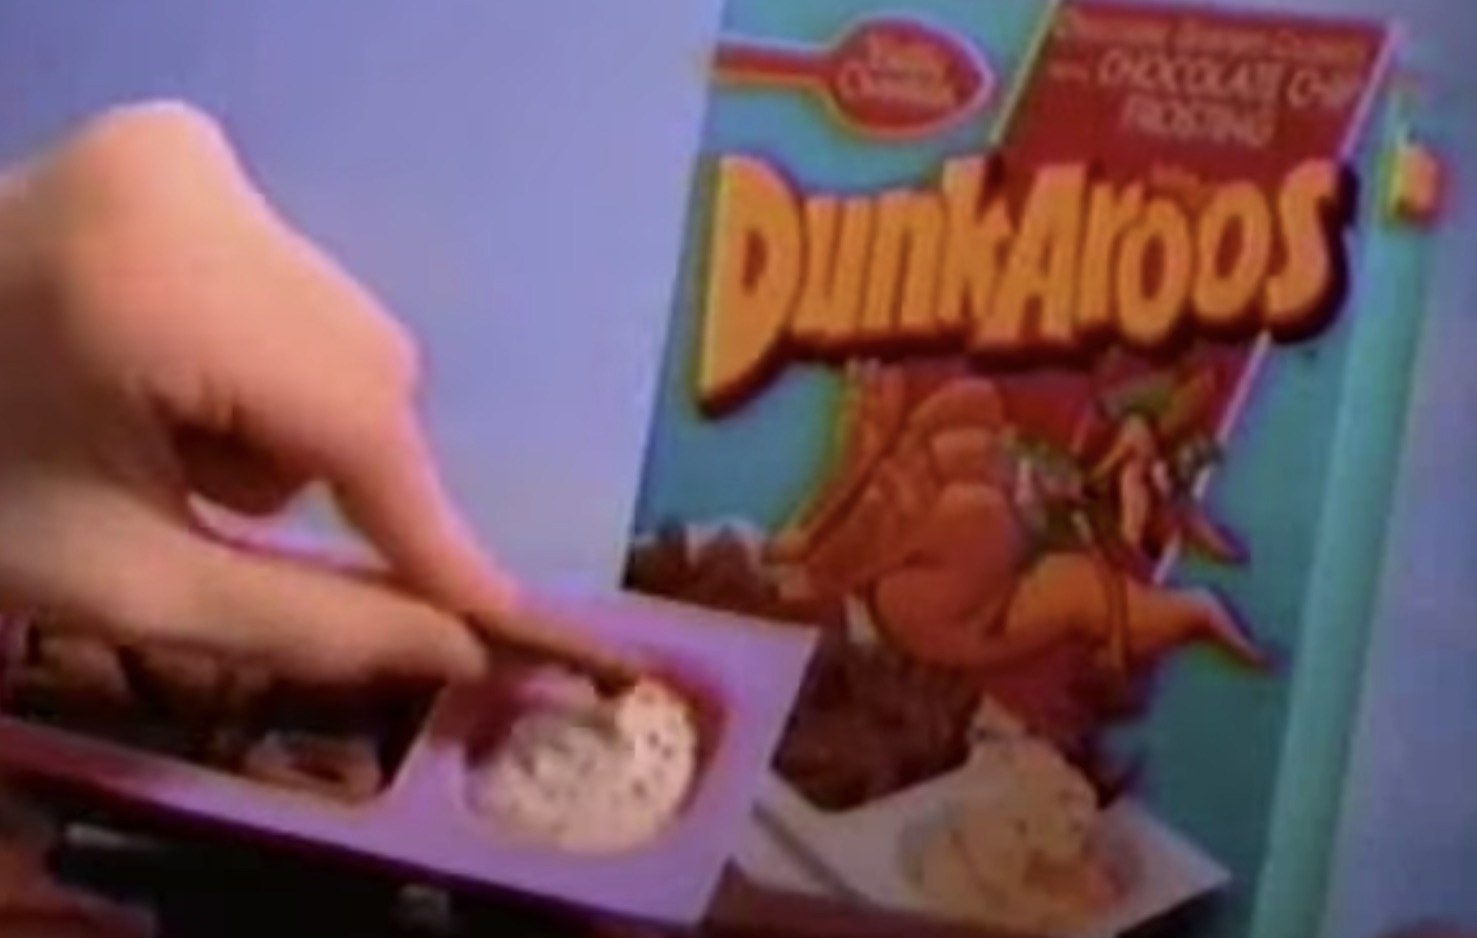 A screenshot of a kid's dipping into a cookie into the Dunkaroos cream